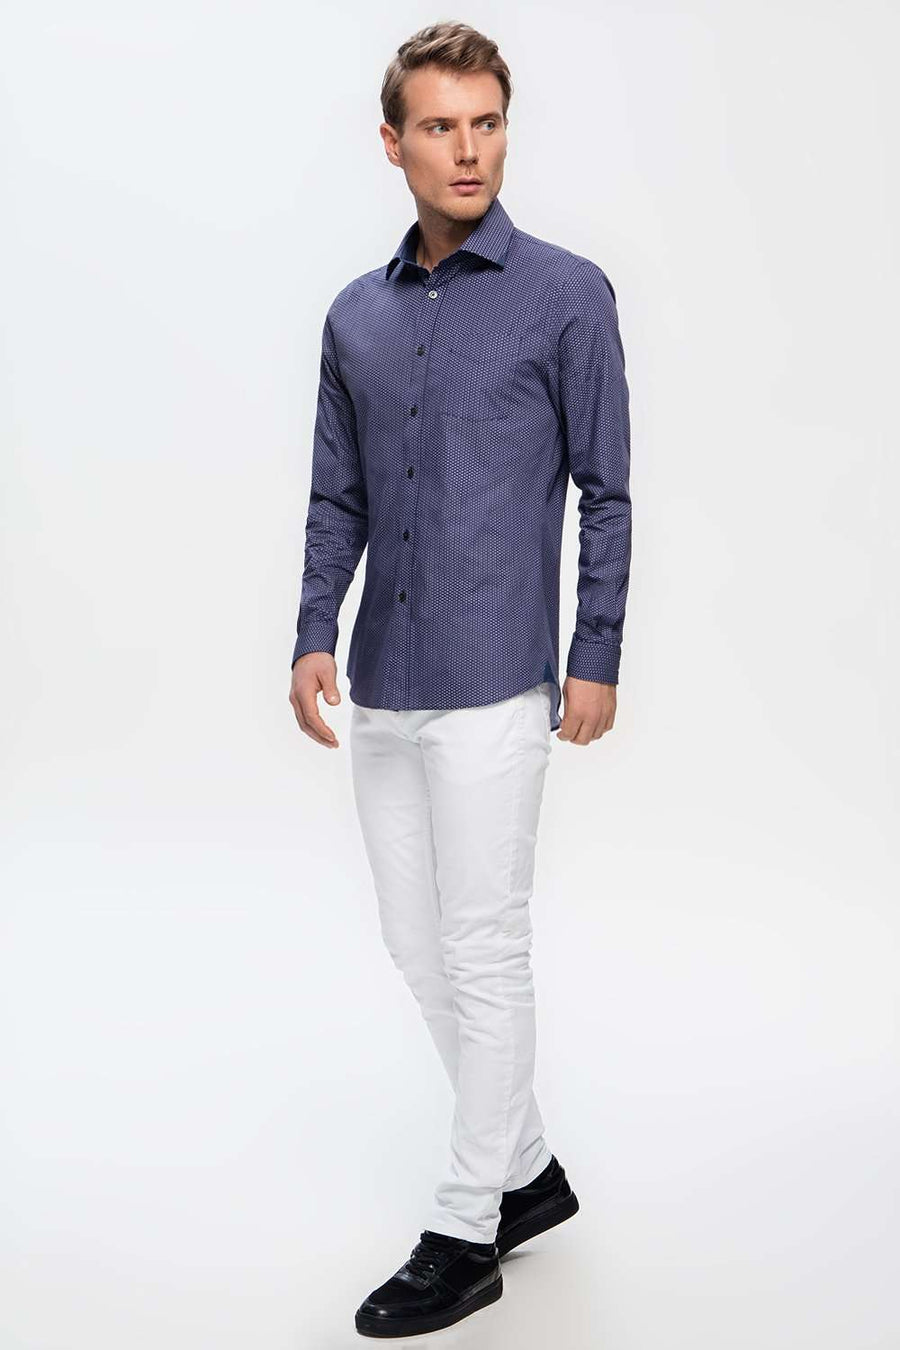 LEIPZIG DARK BLUE SHIRTe],Duacosta